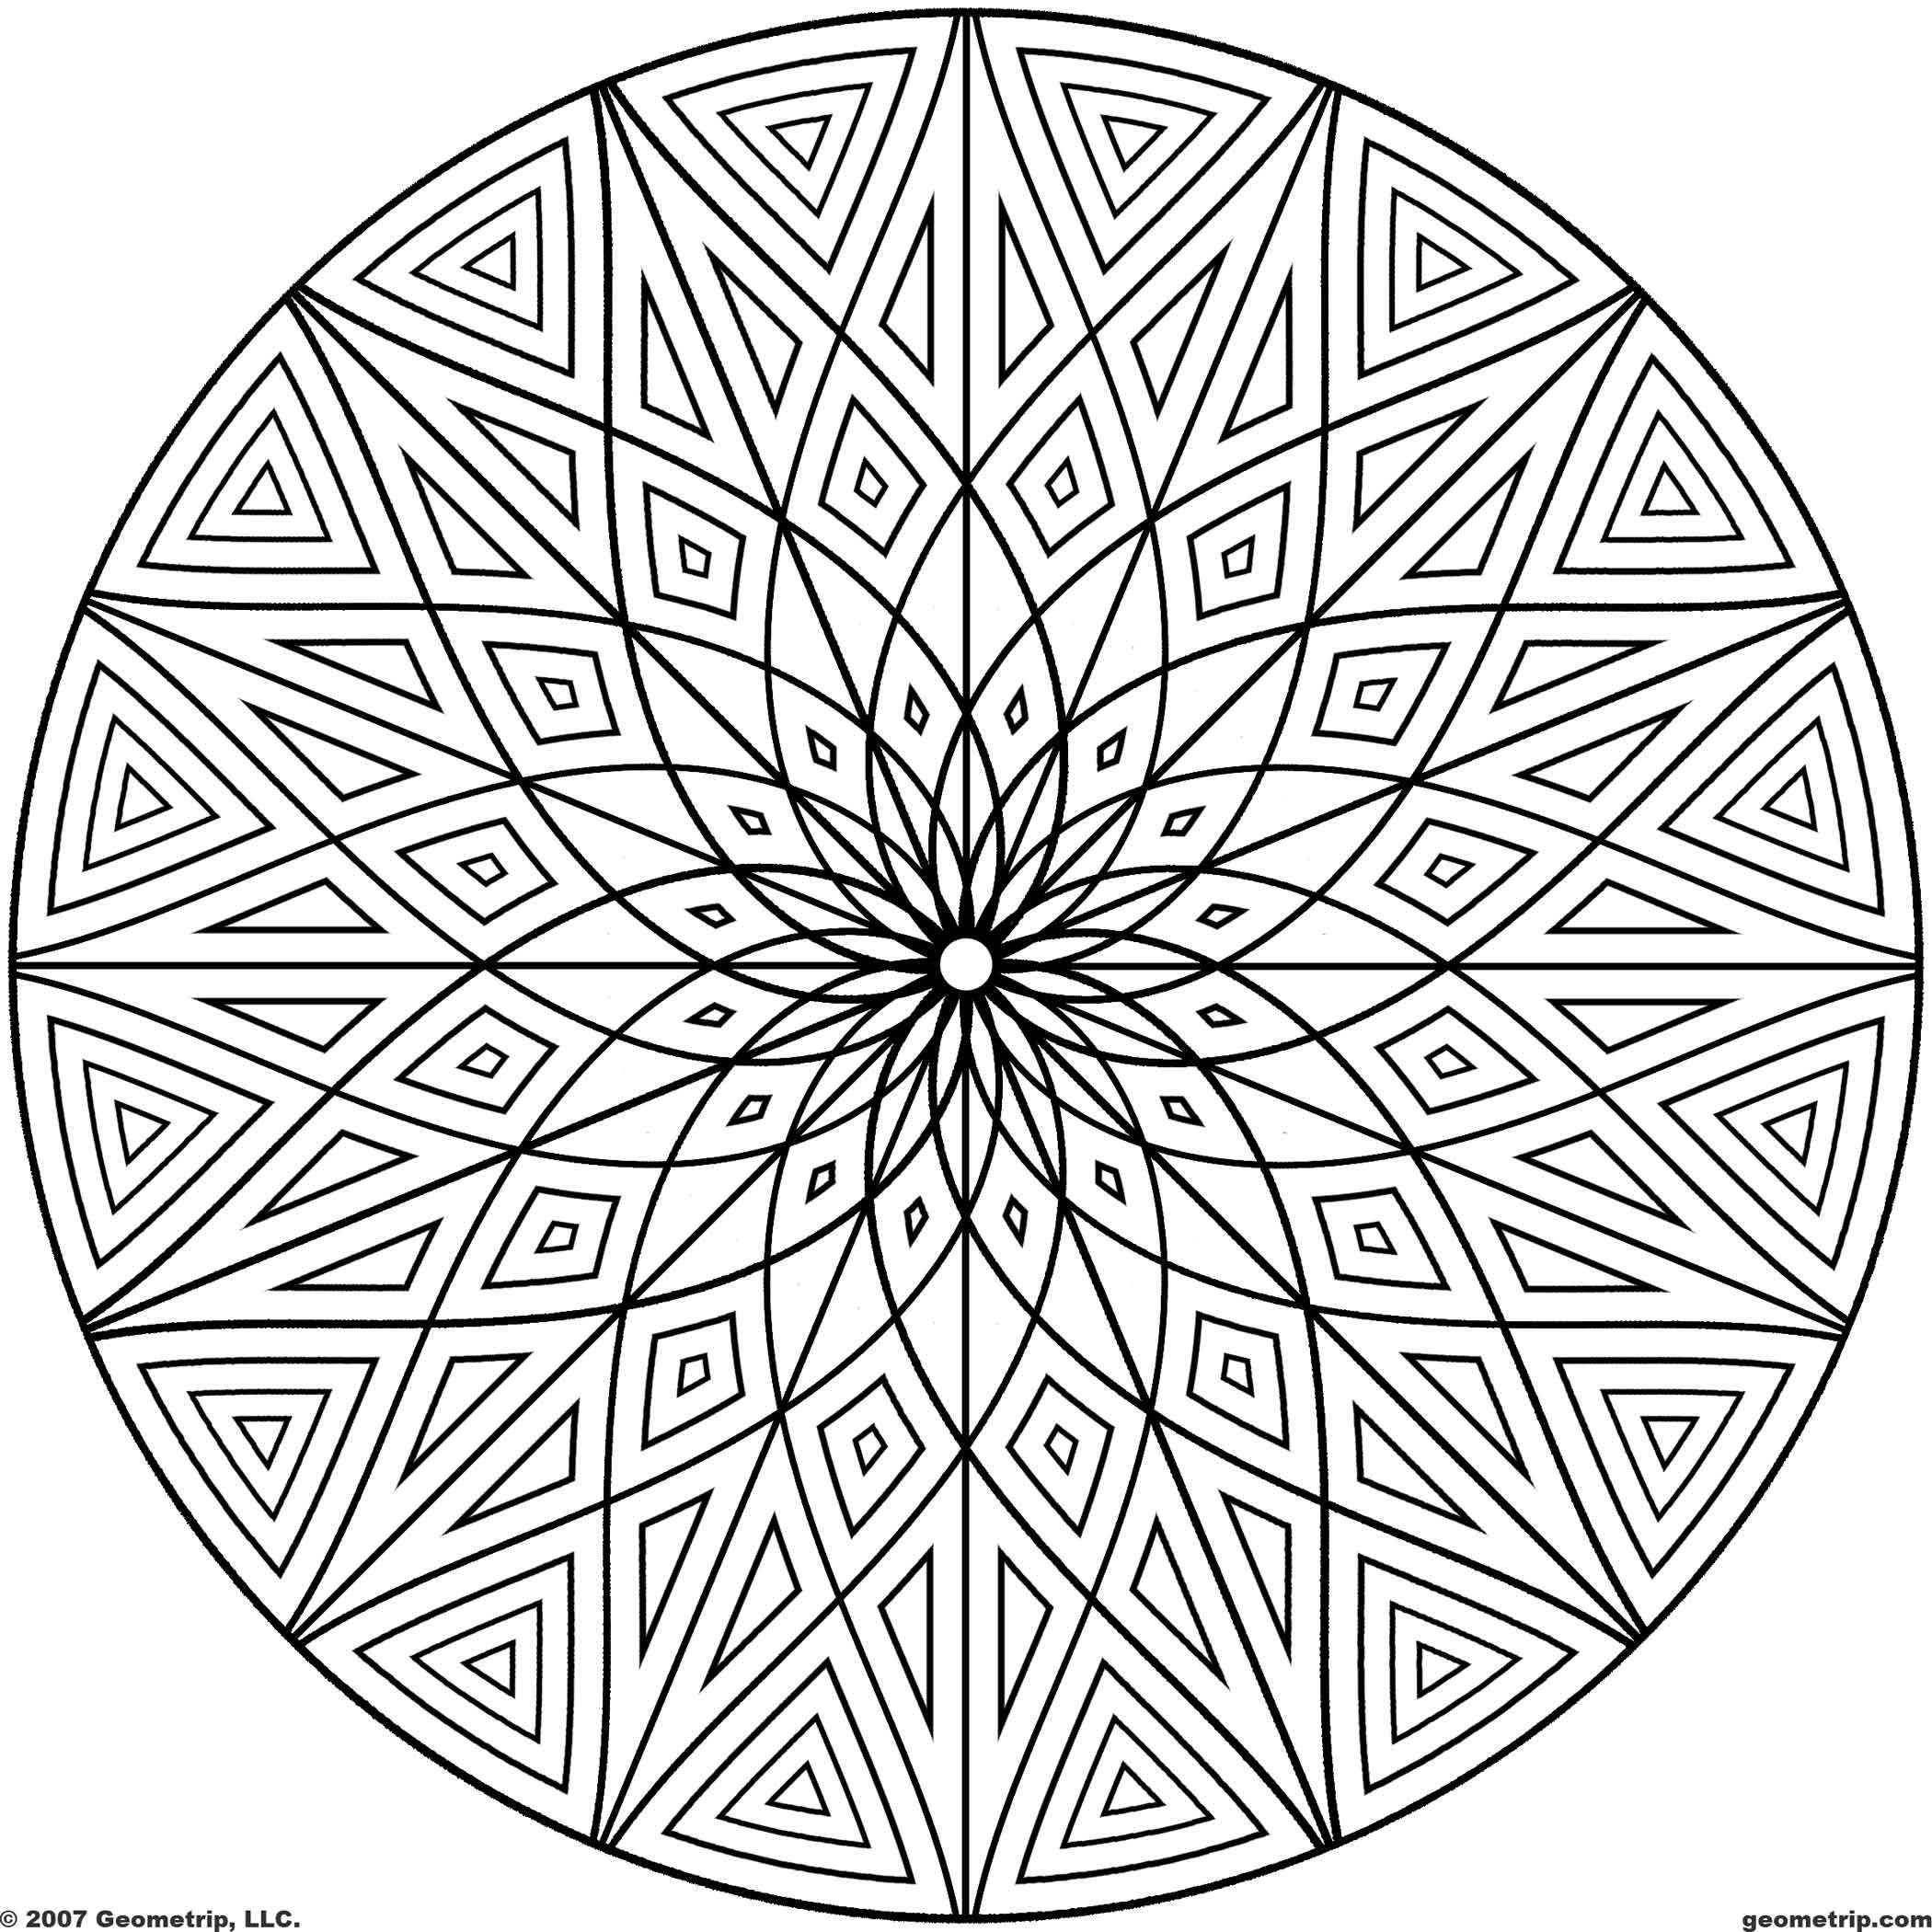 coloring pages of cool designs cool design coloring pages getcoloringpagescom designs coloring cool pages of 1 1